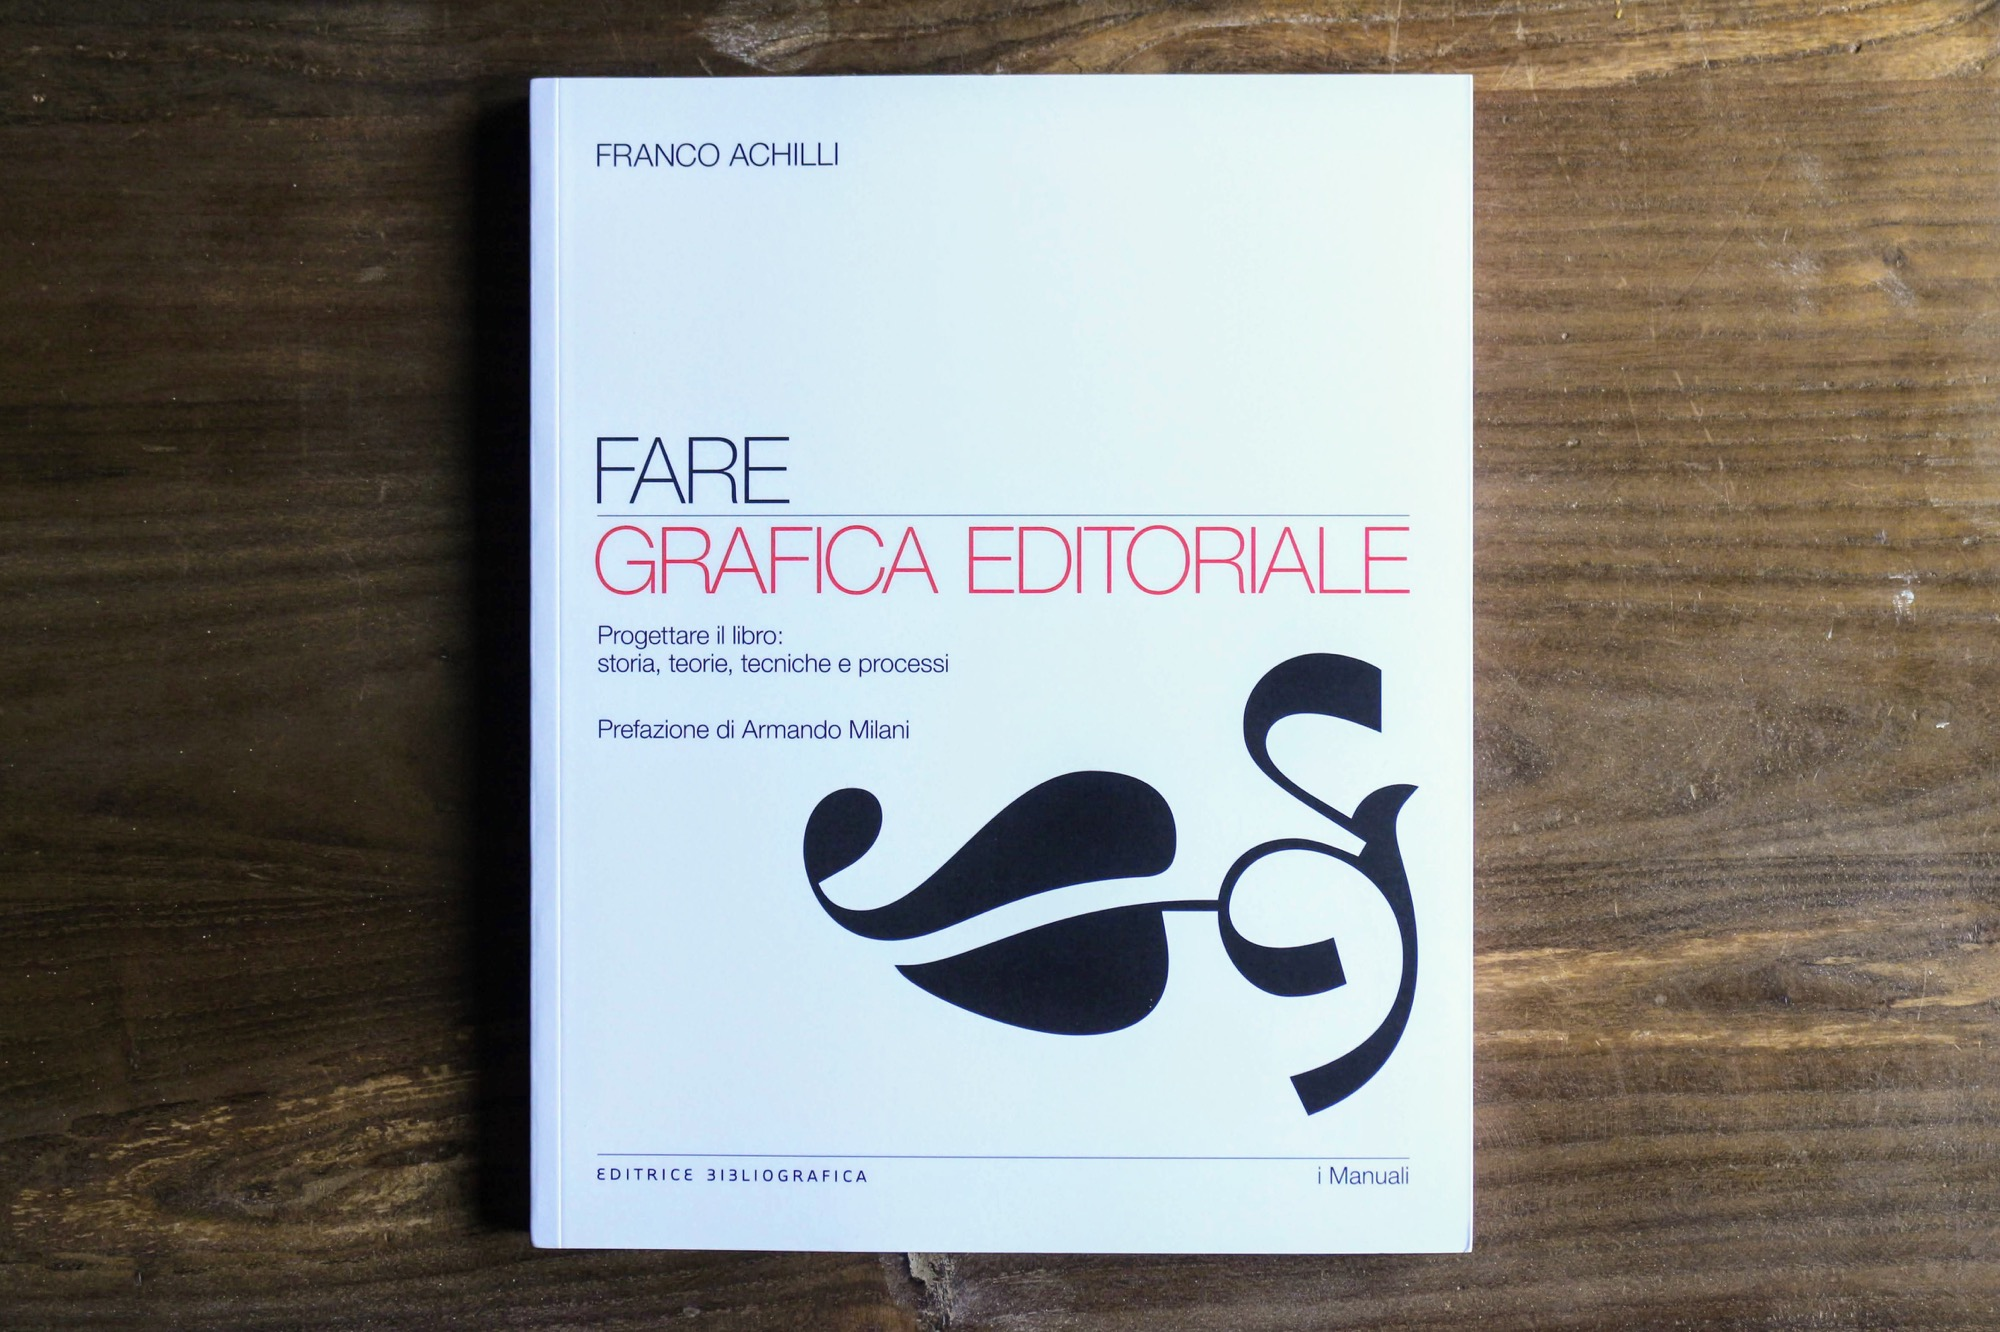 Fare grafica editoriale: un libro che spiega come fare libri